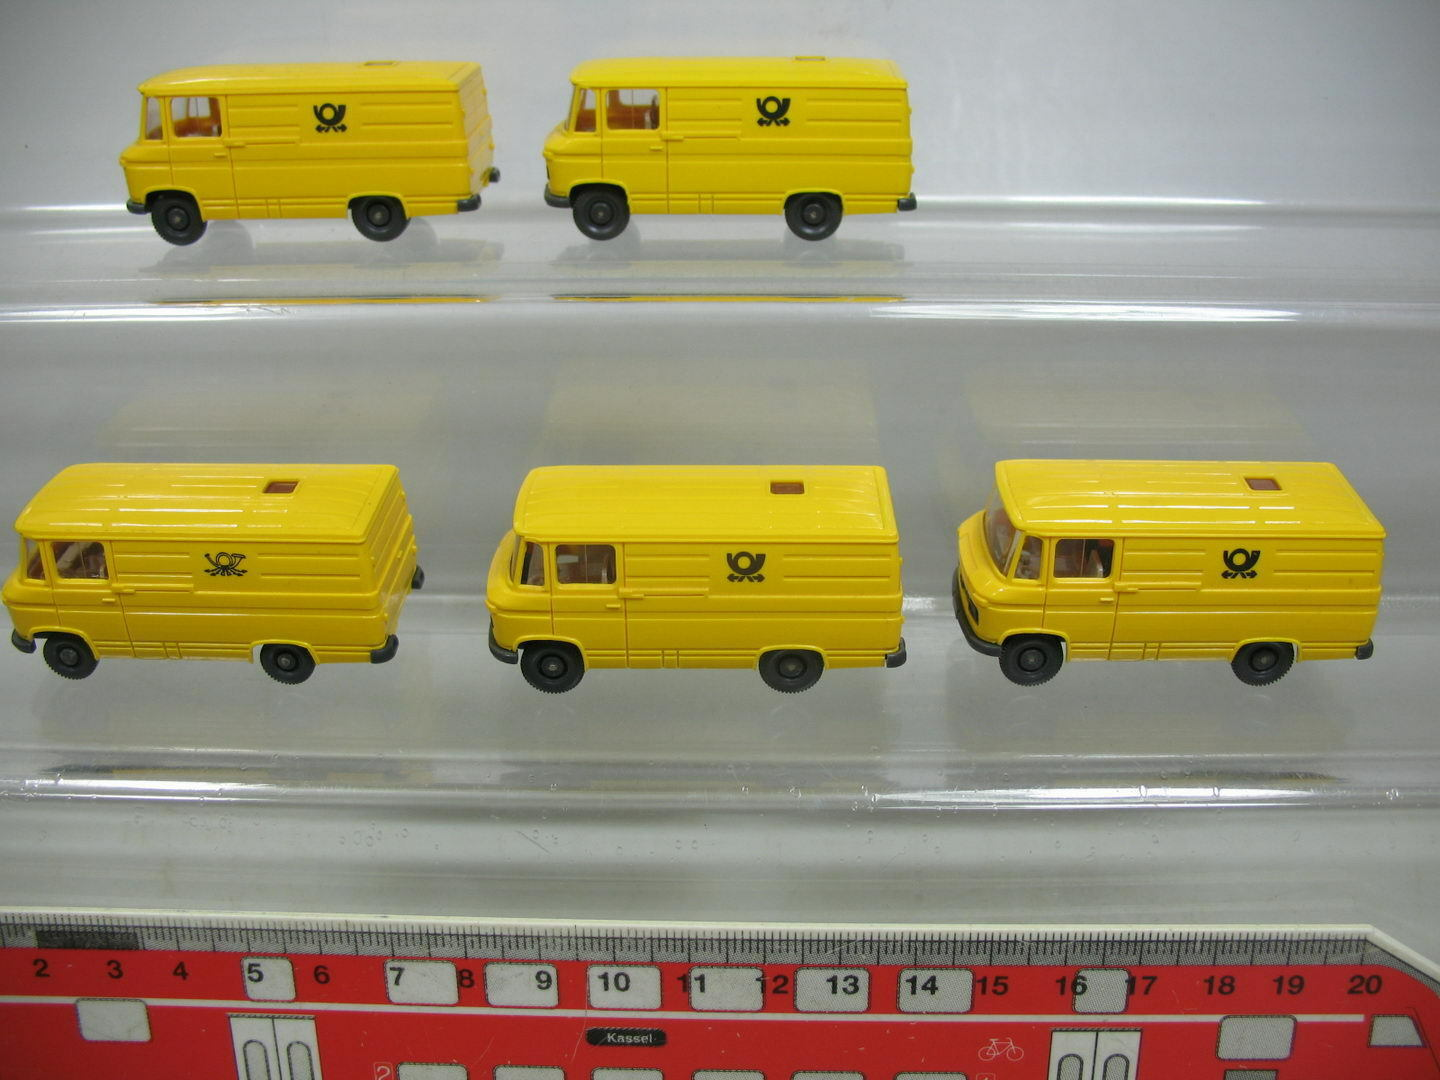 Af193-0, 5     5x WIKING H0 transporter-modell MERCEDES-BENZ MB 27 POST, NUEVO e691f1